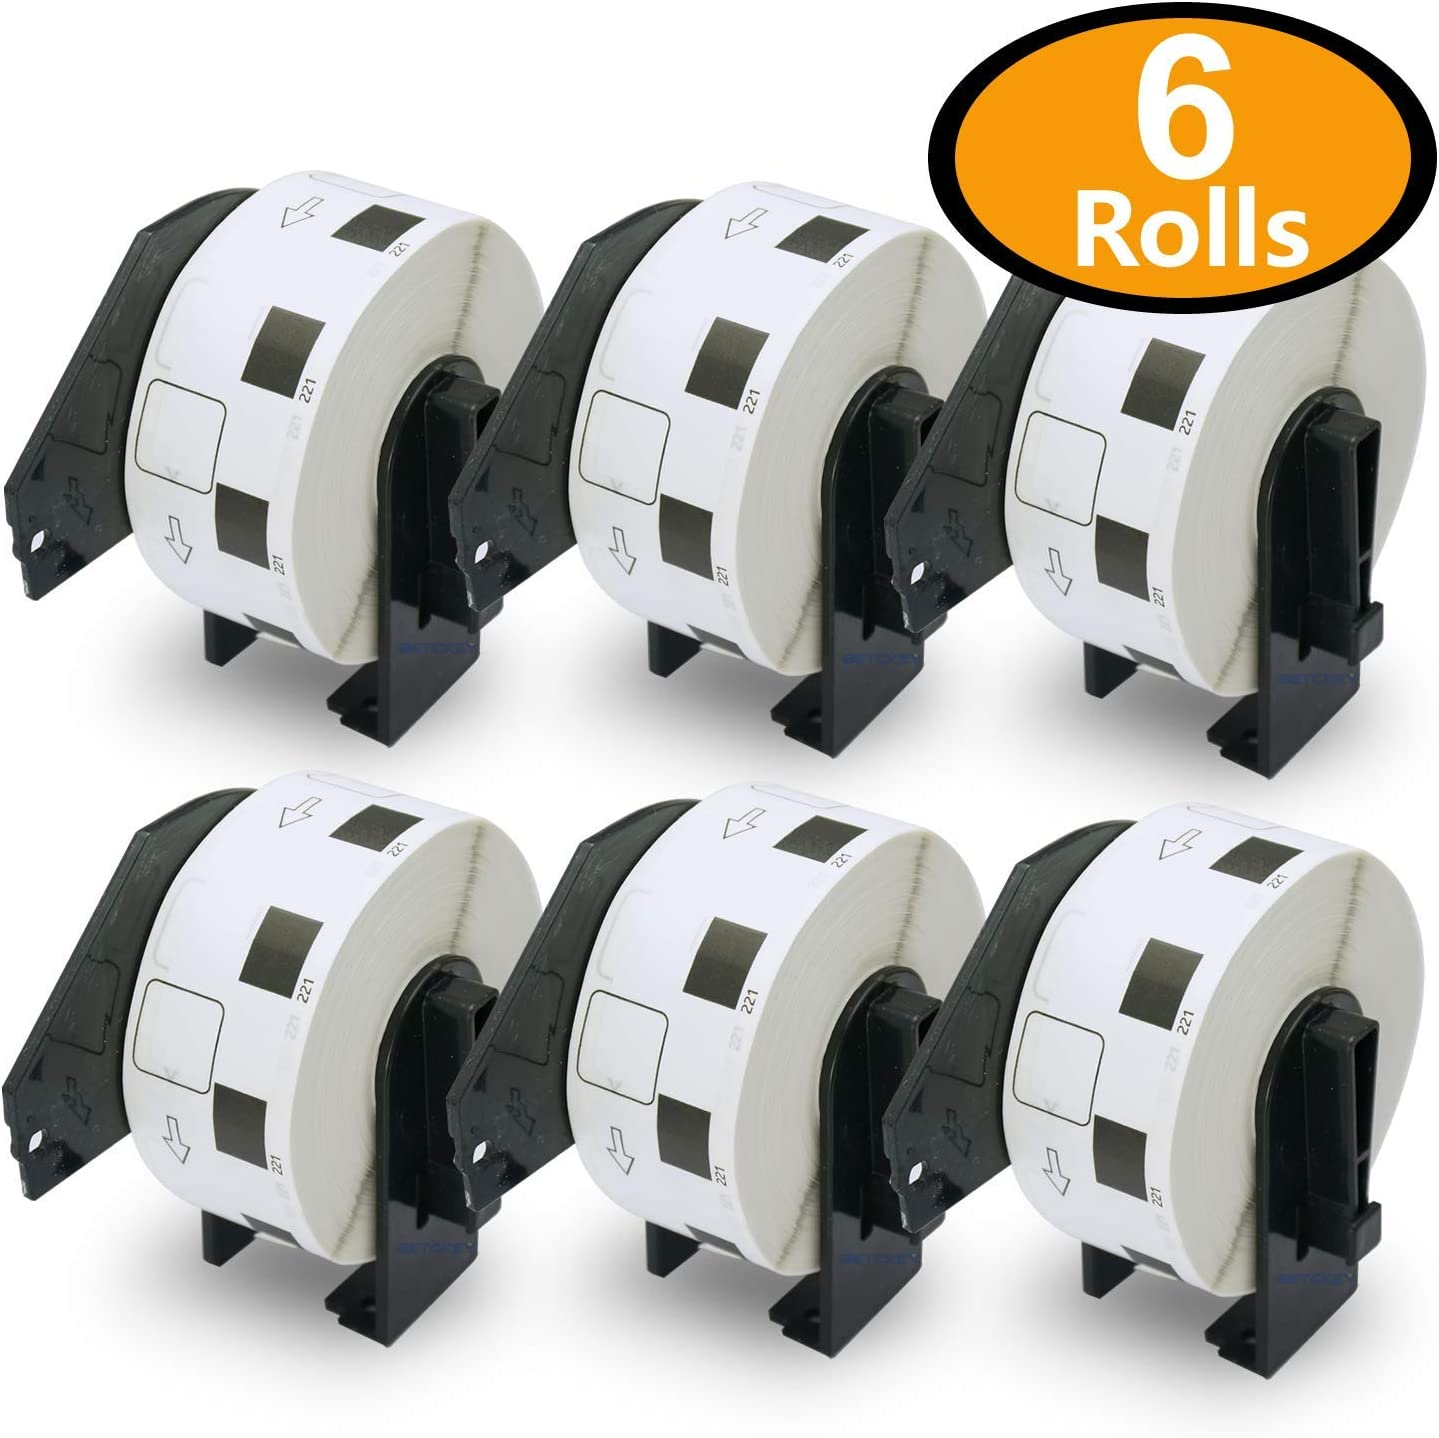 10 Rolls Brother-Compatible DK-11221 23mm x 23mm 1000 Labels Per Roll With One Refillable Cartridge